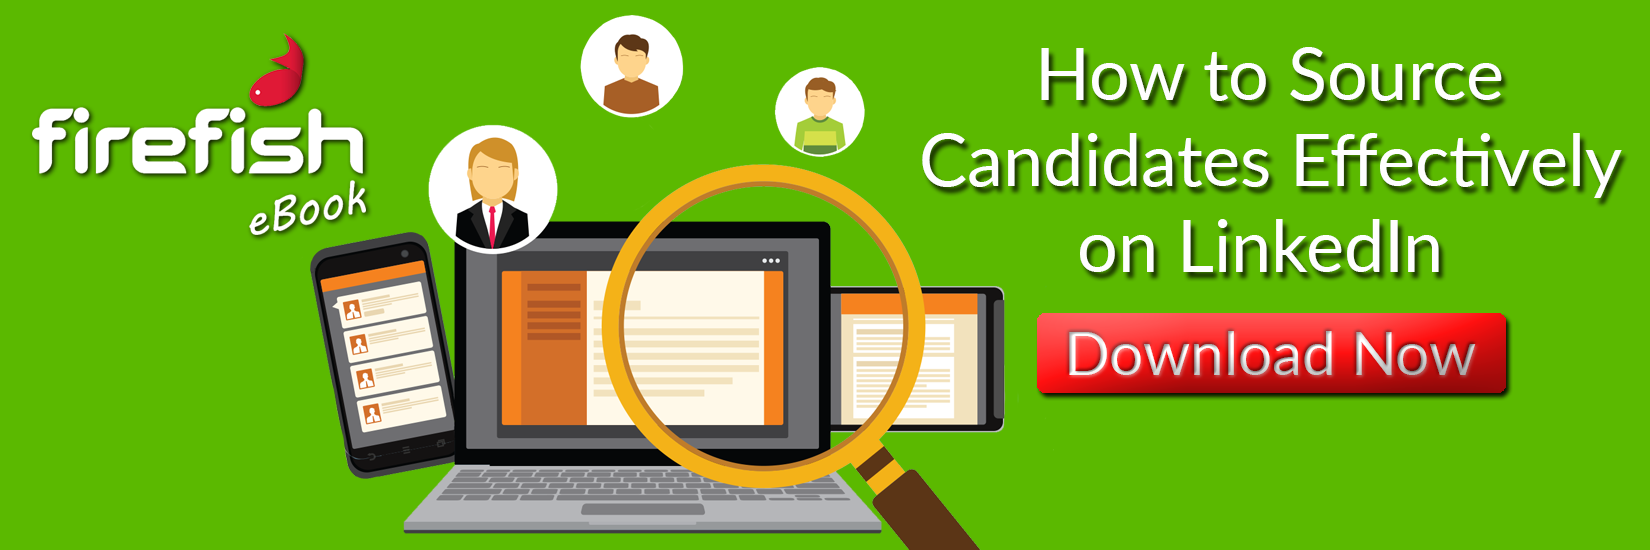 How to source candidates on LinkedIn